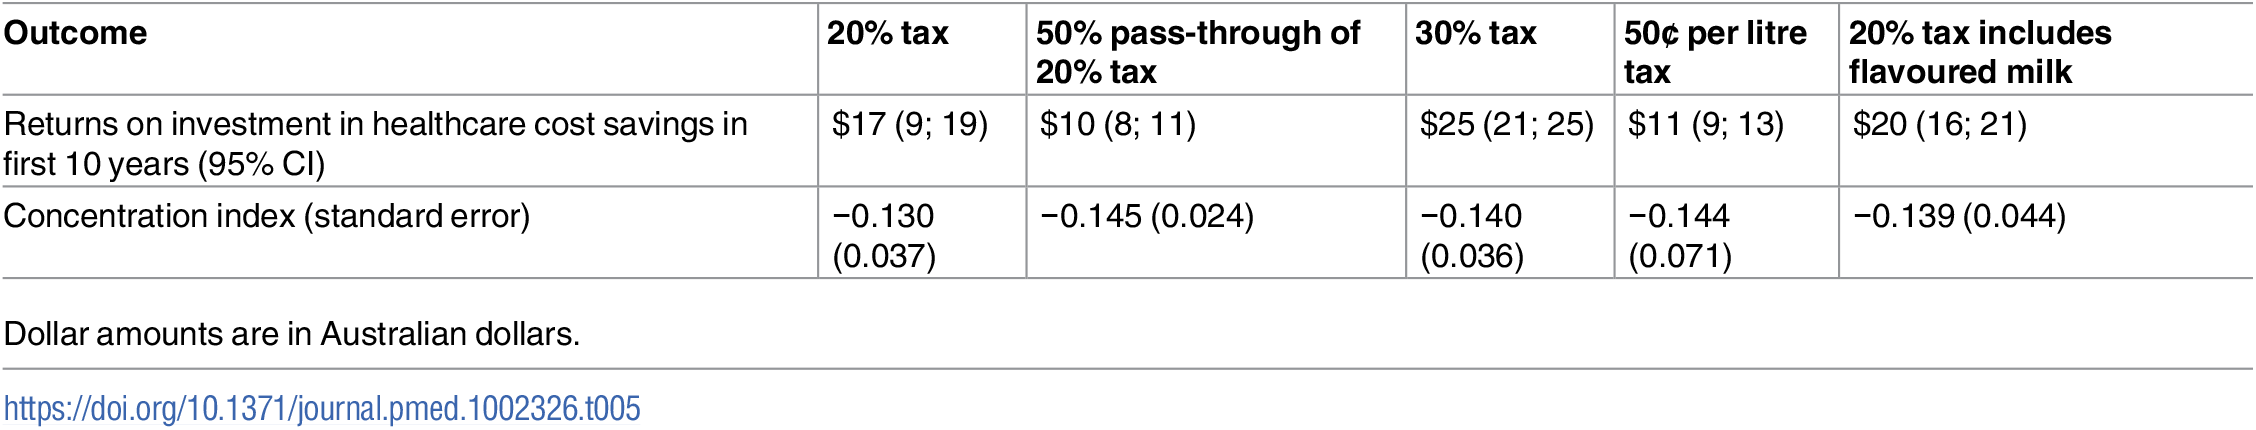 Returns on investment in healthcare cost savings and concentration indices of tax scenarios.